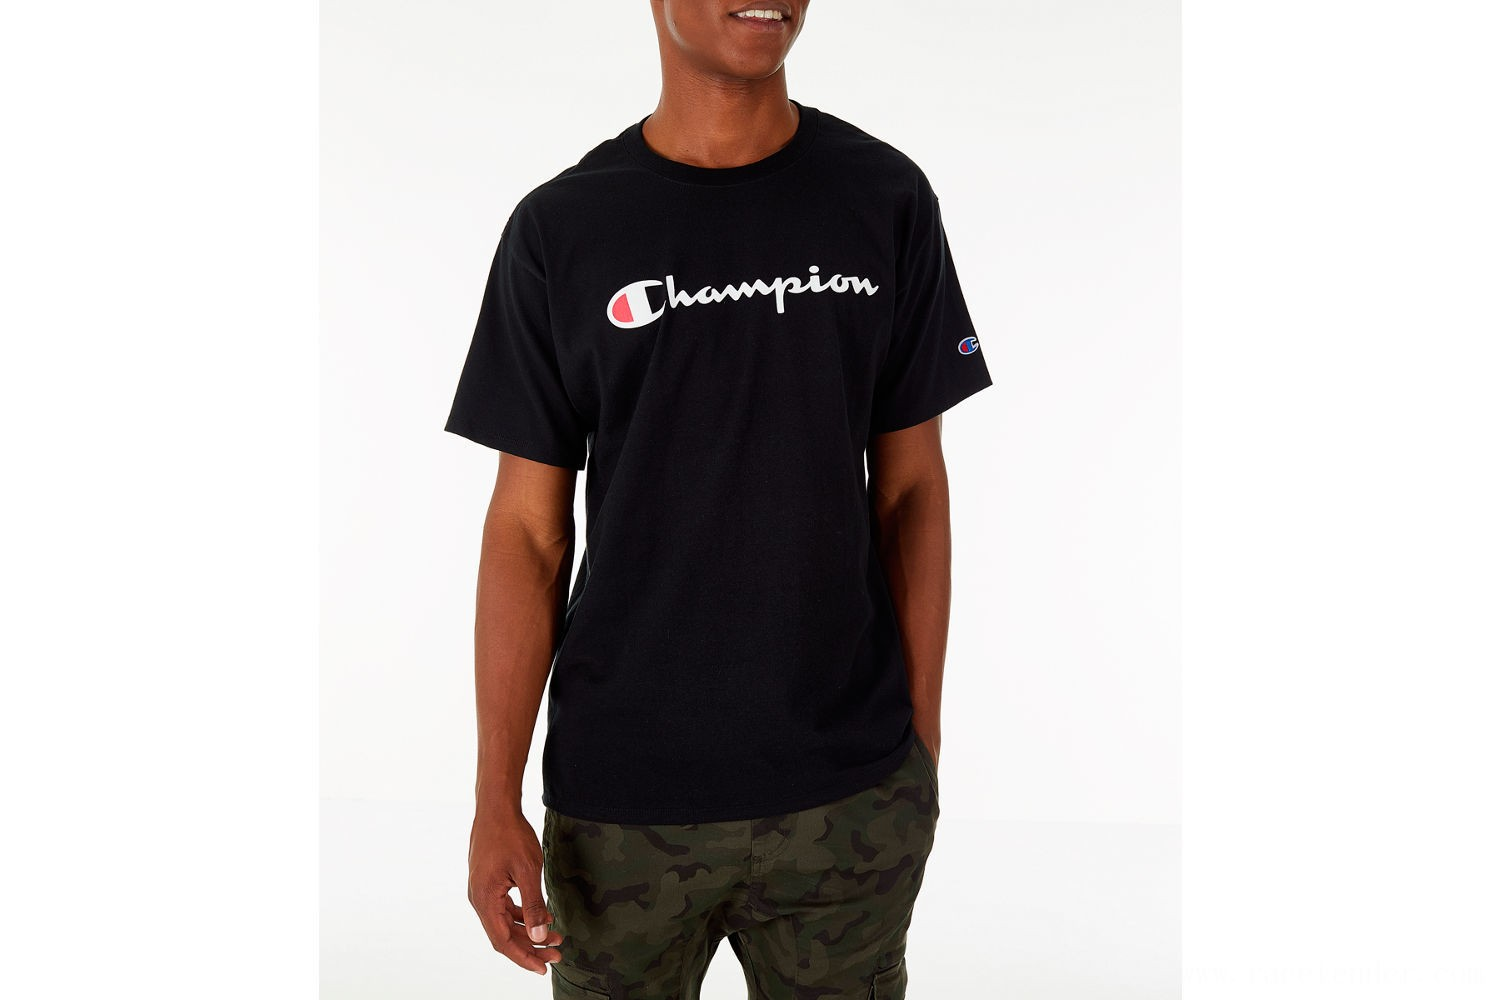 Champion Men's Graphic Jersey T-Shirt - Black